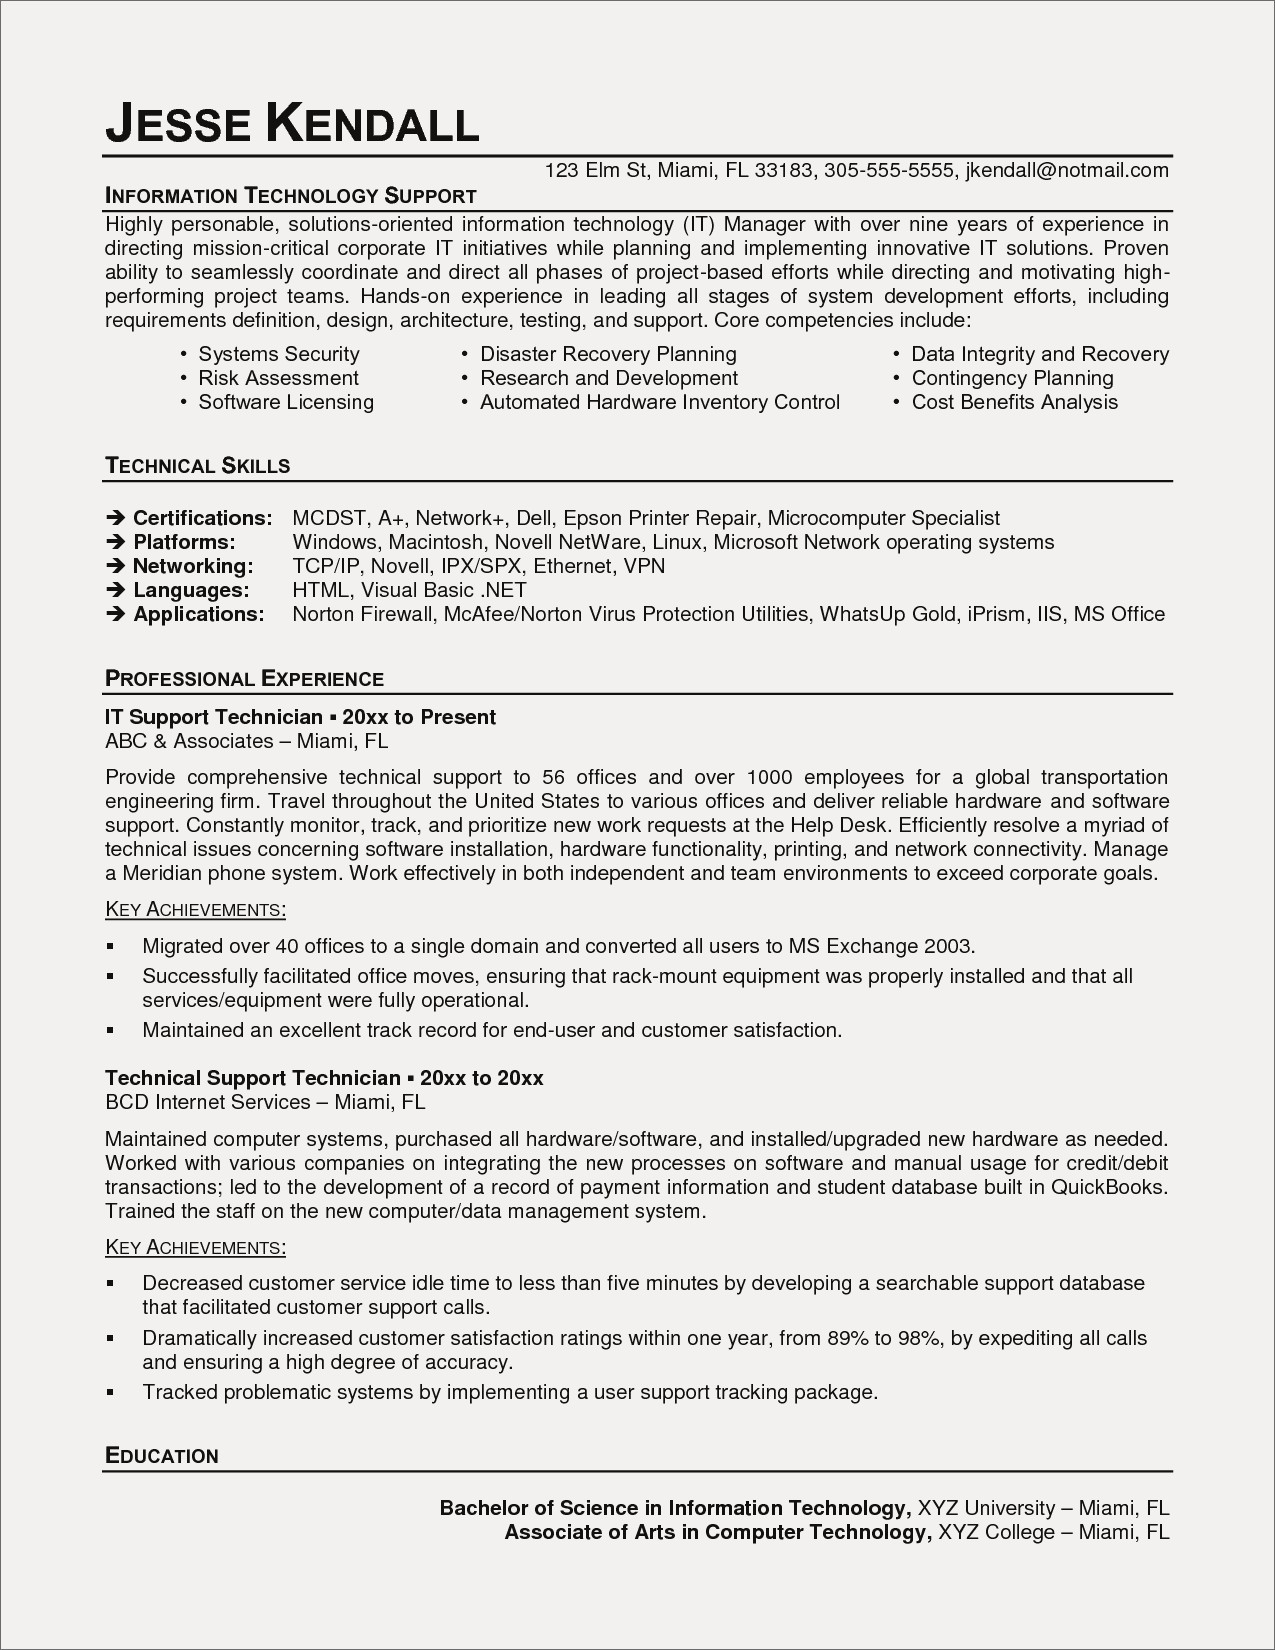 automotive resume Collection-Automotive Resume New Auto Mechanic Resume American Resume Sample New Student Resume 0d 9-o